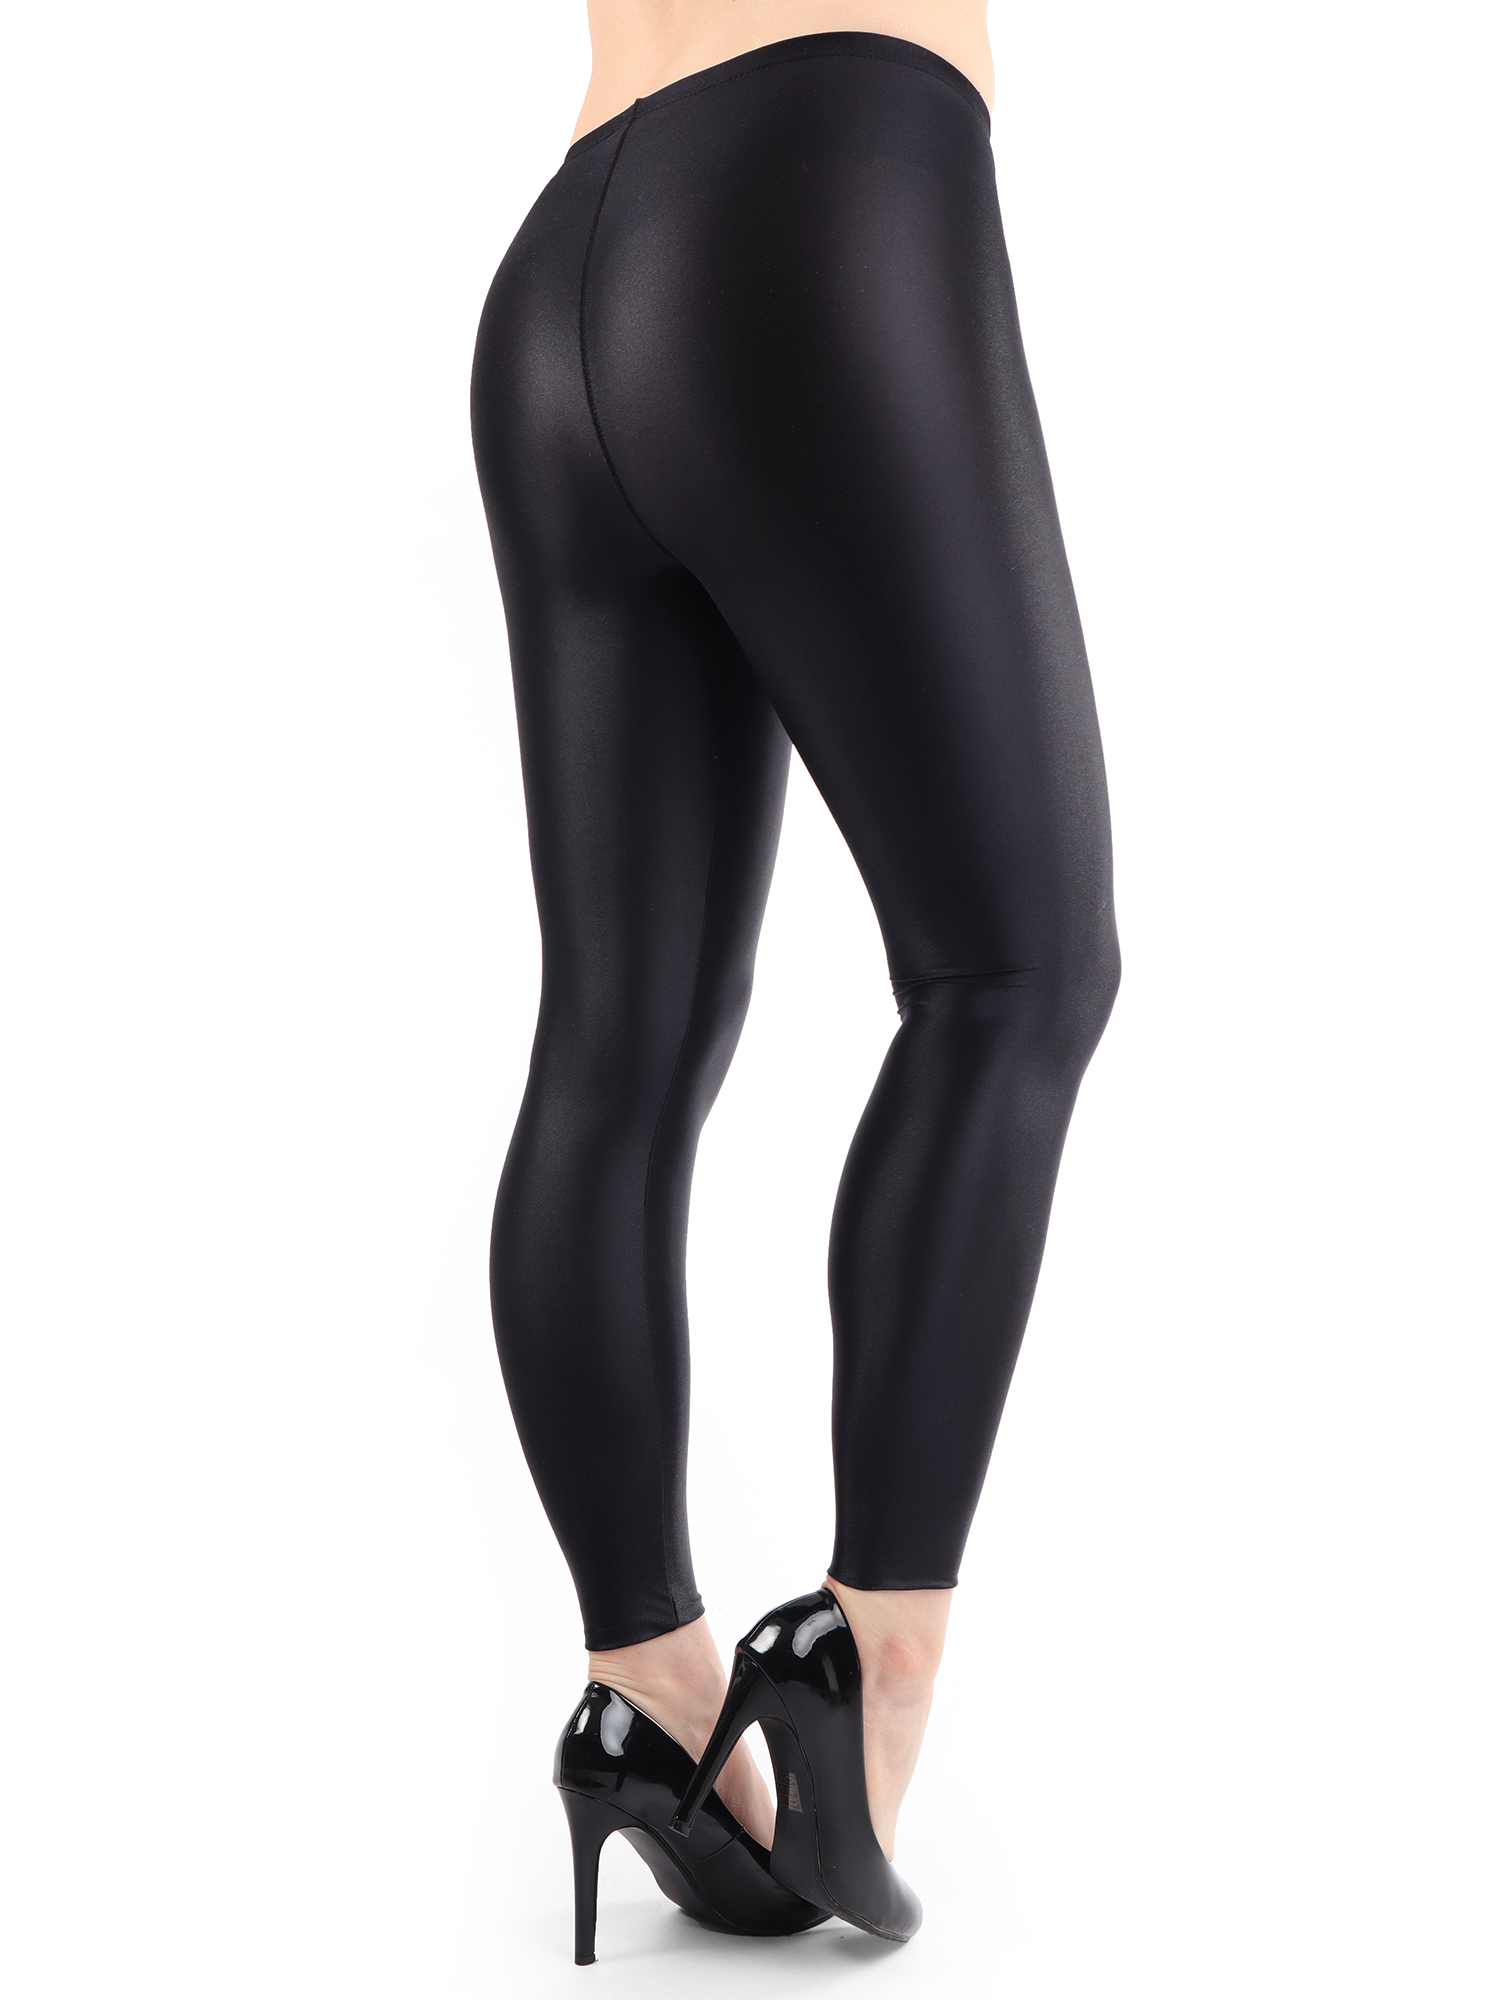 Gatta Black Brillant wetlook leggingsit